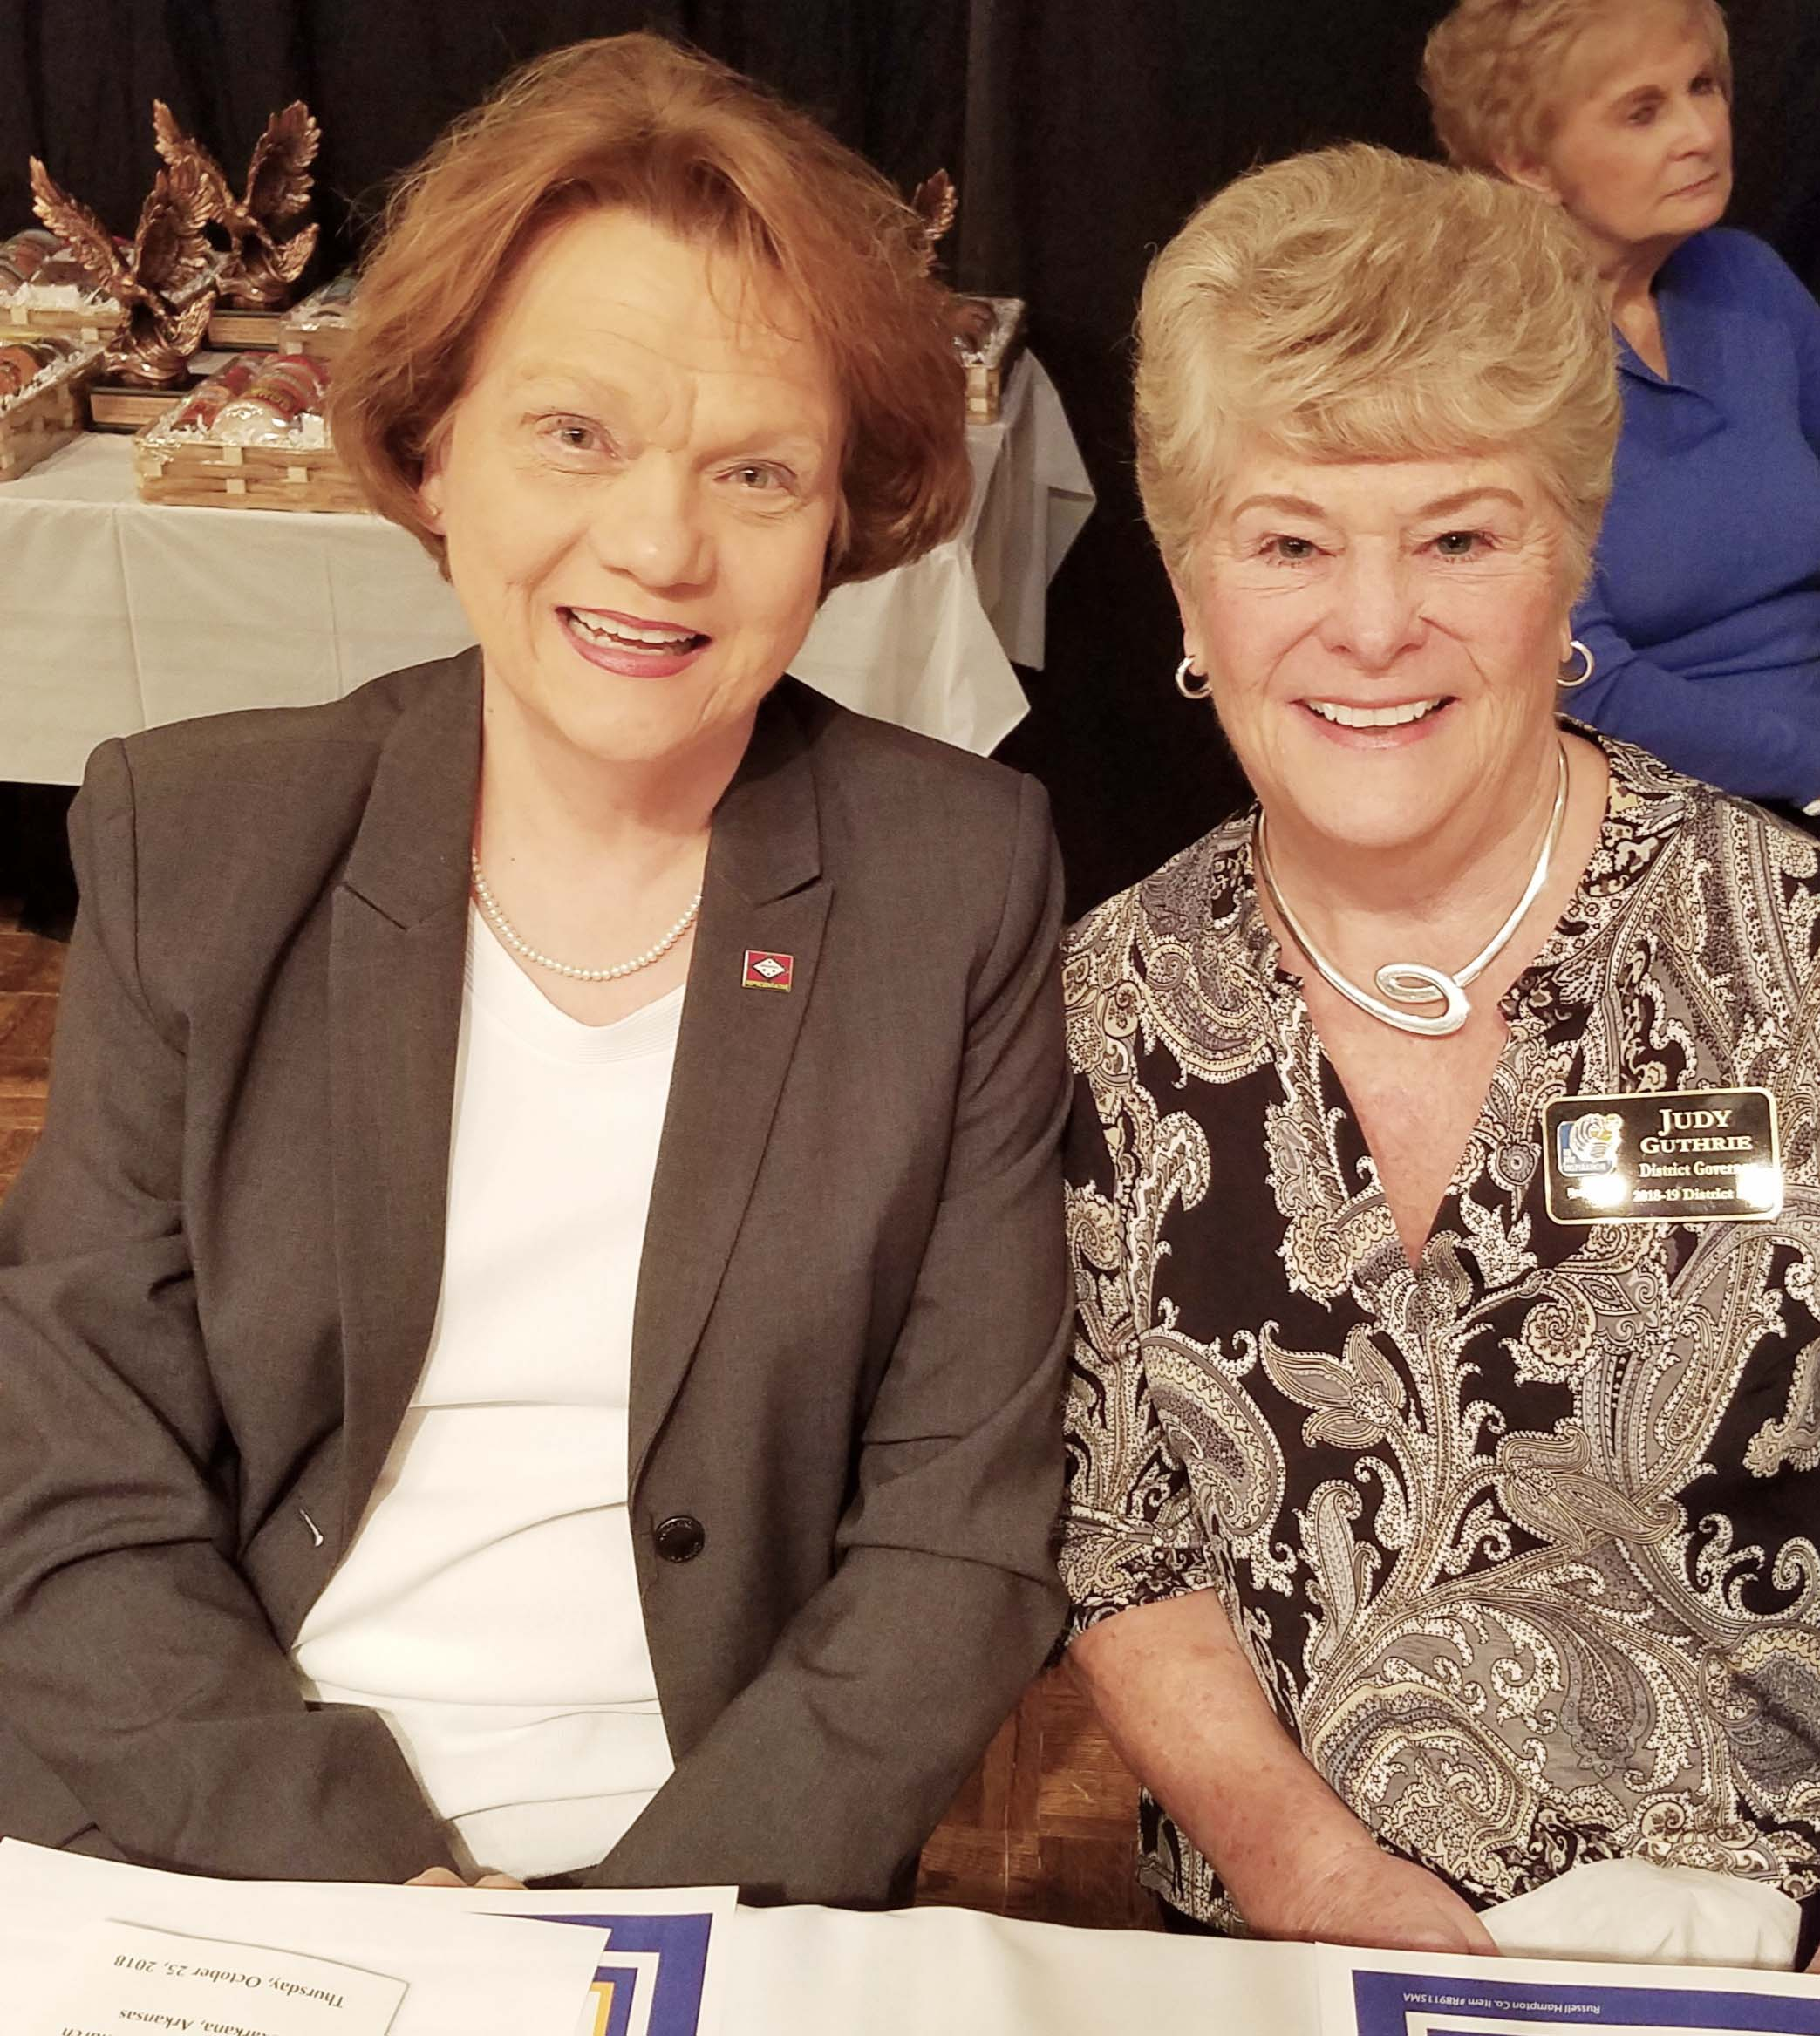 Rep. Carol Dalby and Judy Guthrie